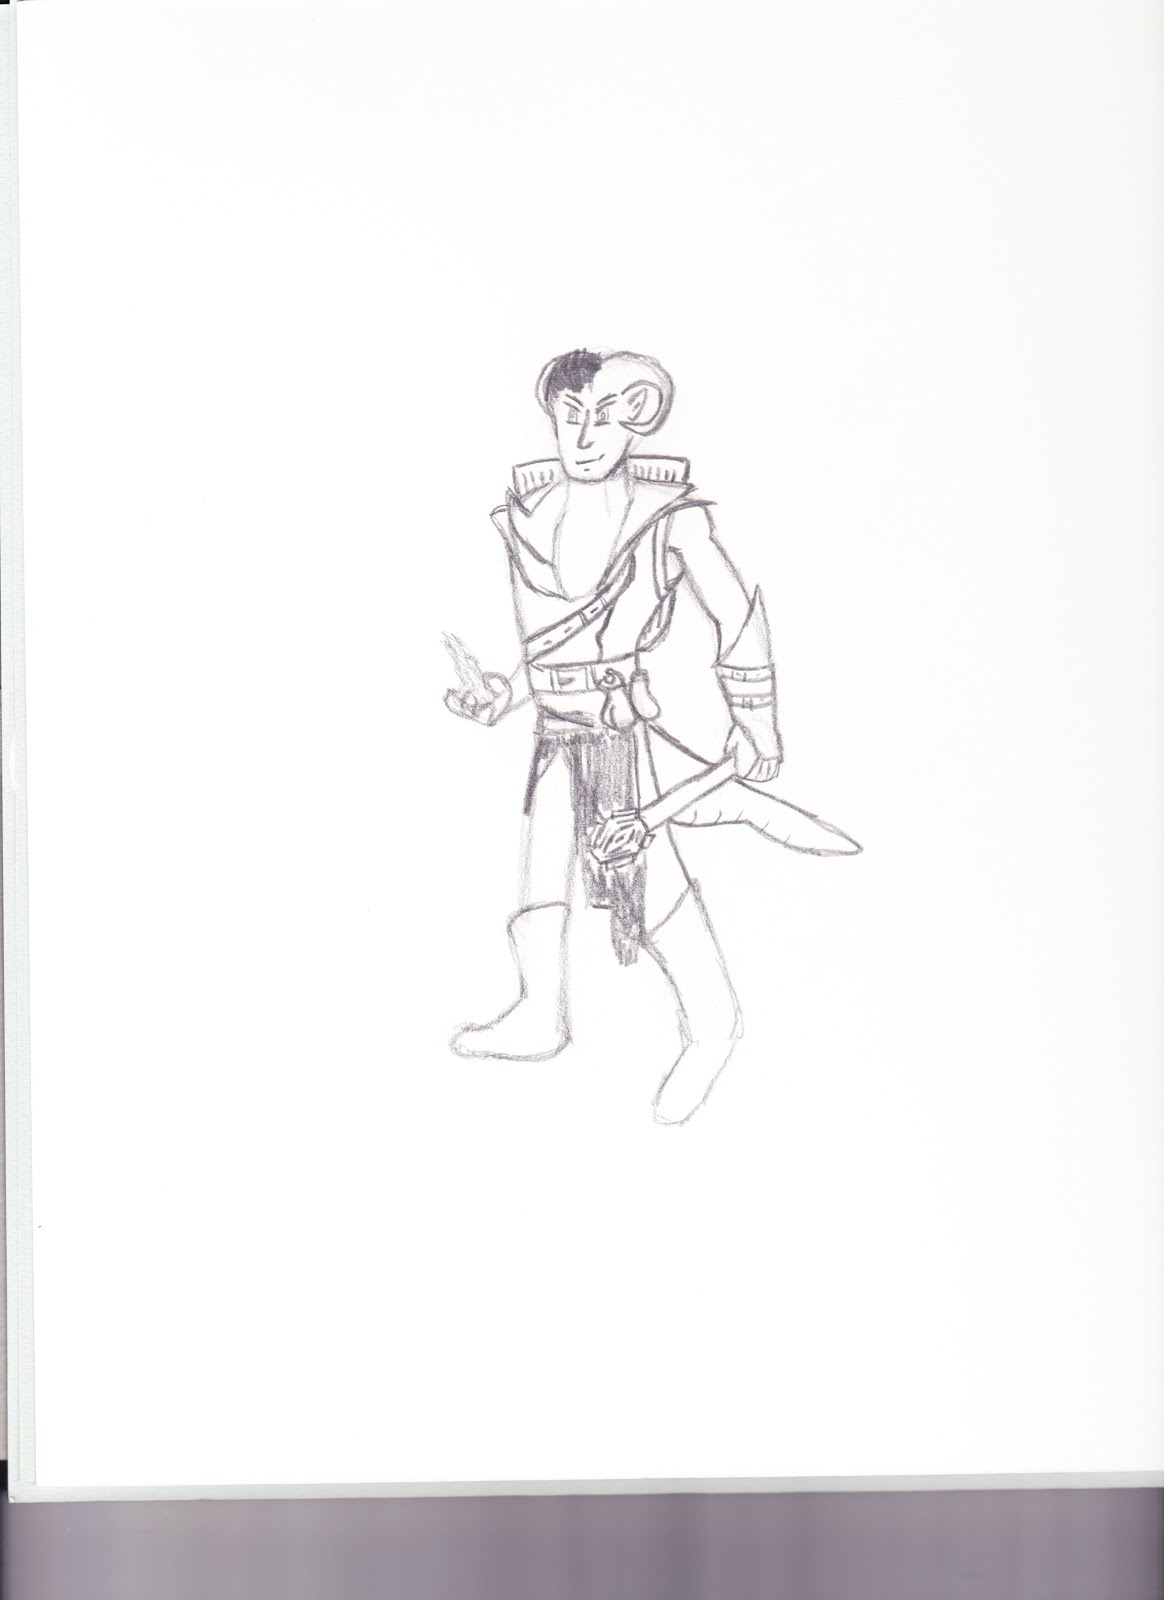 OC Learns to Draw: DnD Sketches (Halfling Rogue, Tiefling